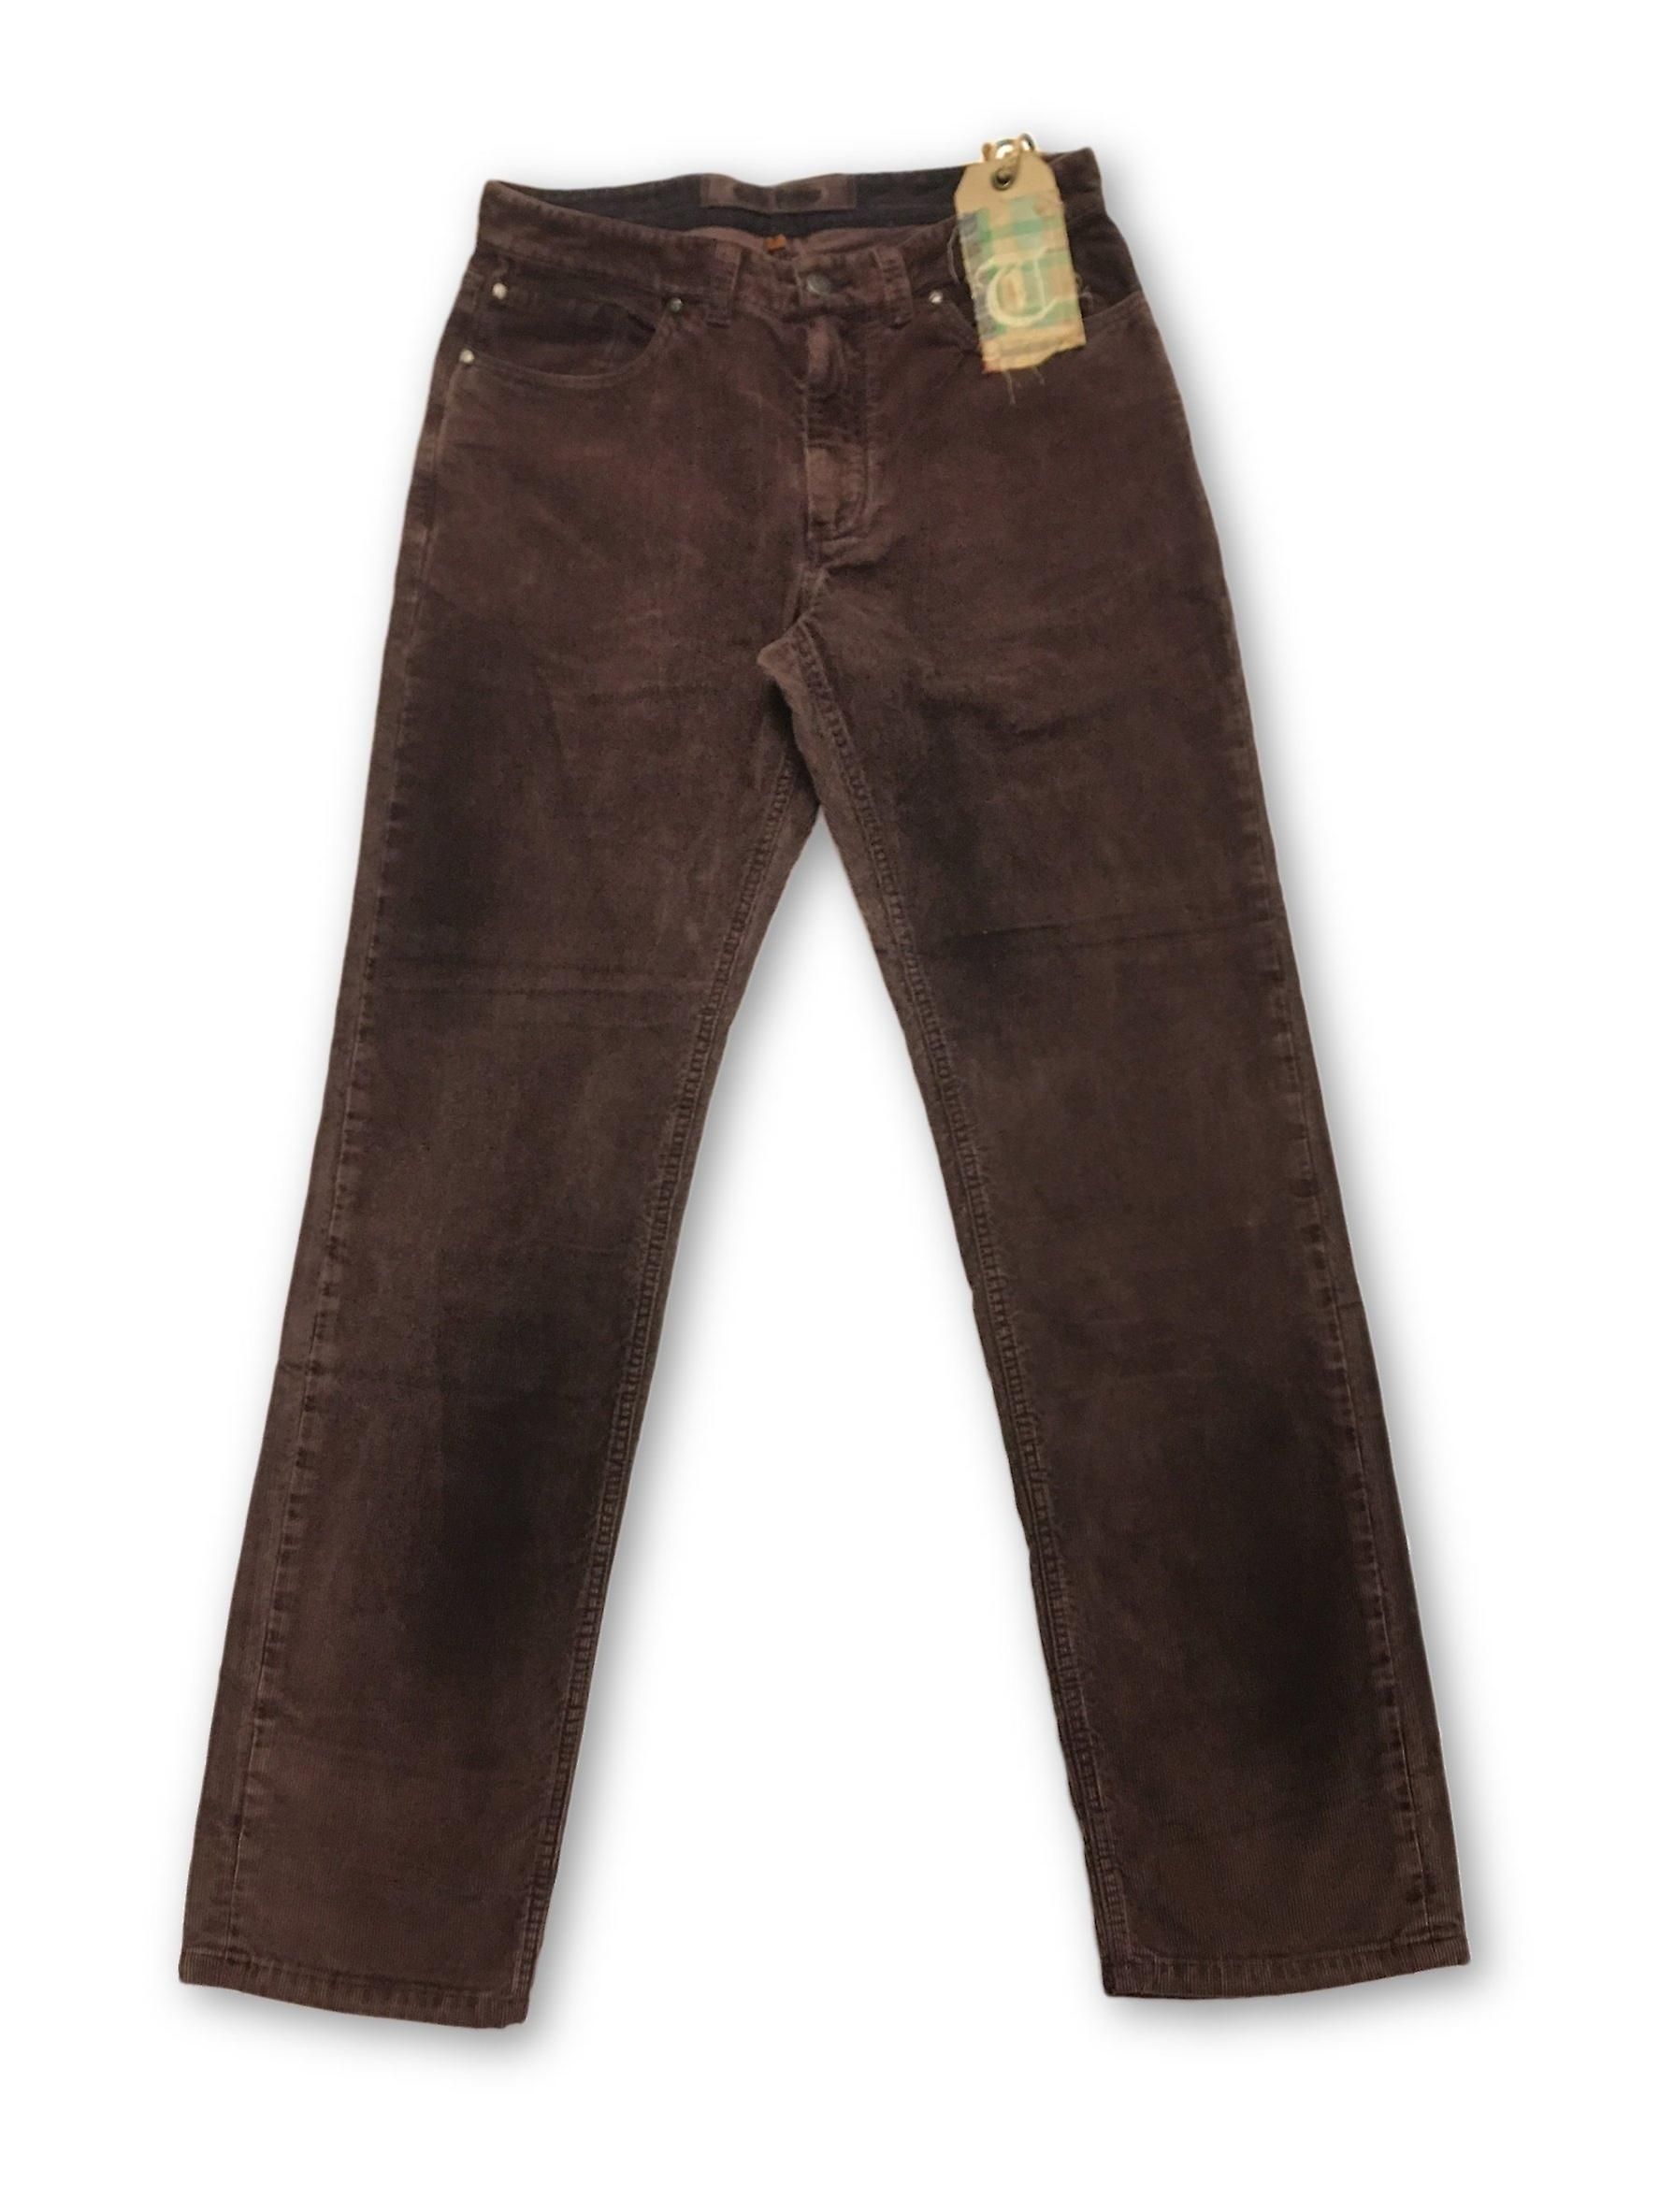 Tailor Vintage cord jeans in brown